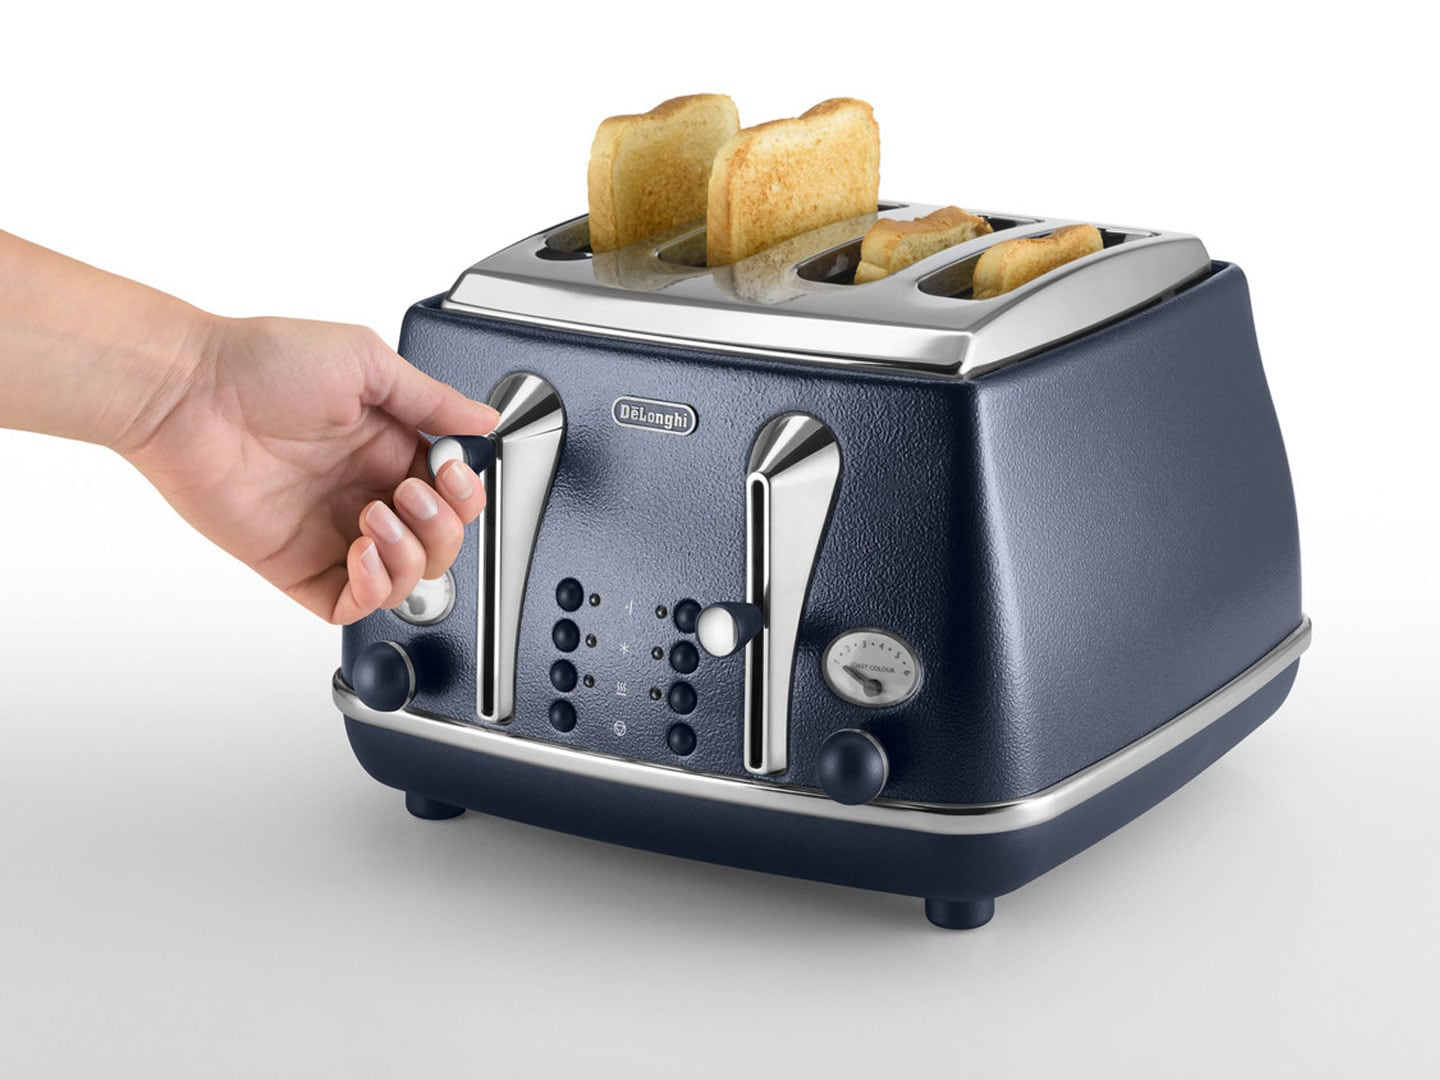 Clearance Stock: Icona Elements 4 Slice Toaster - Ocean Blue - CTOE 4003.BL